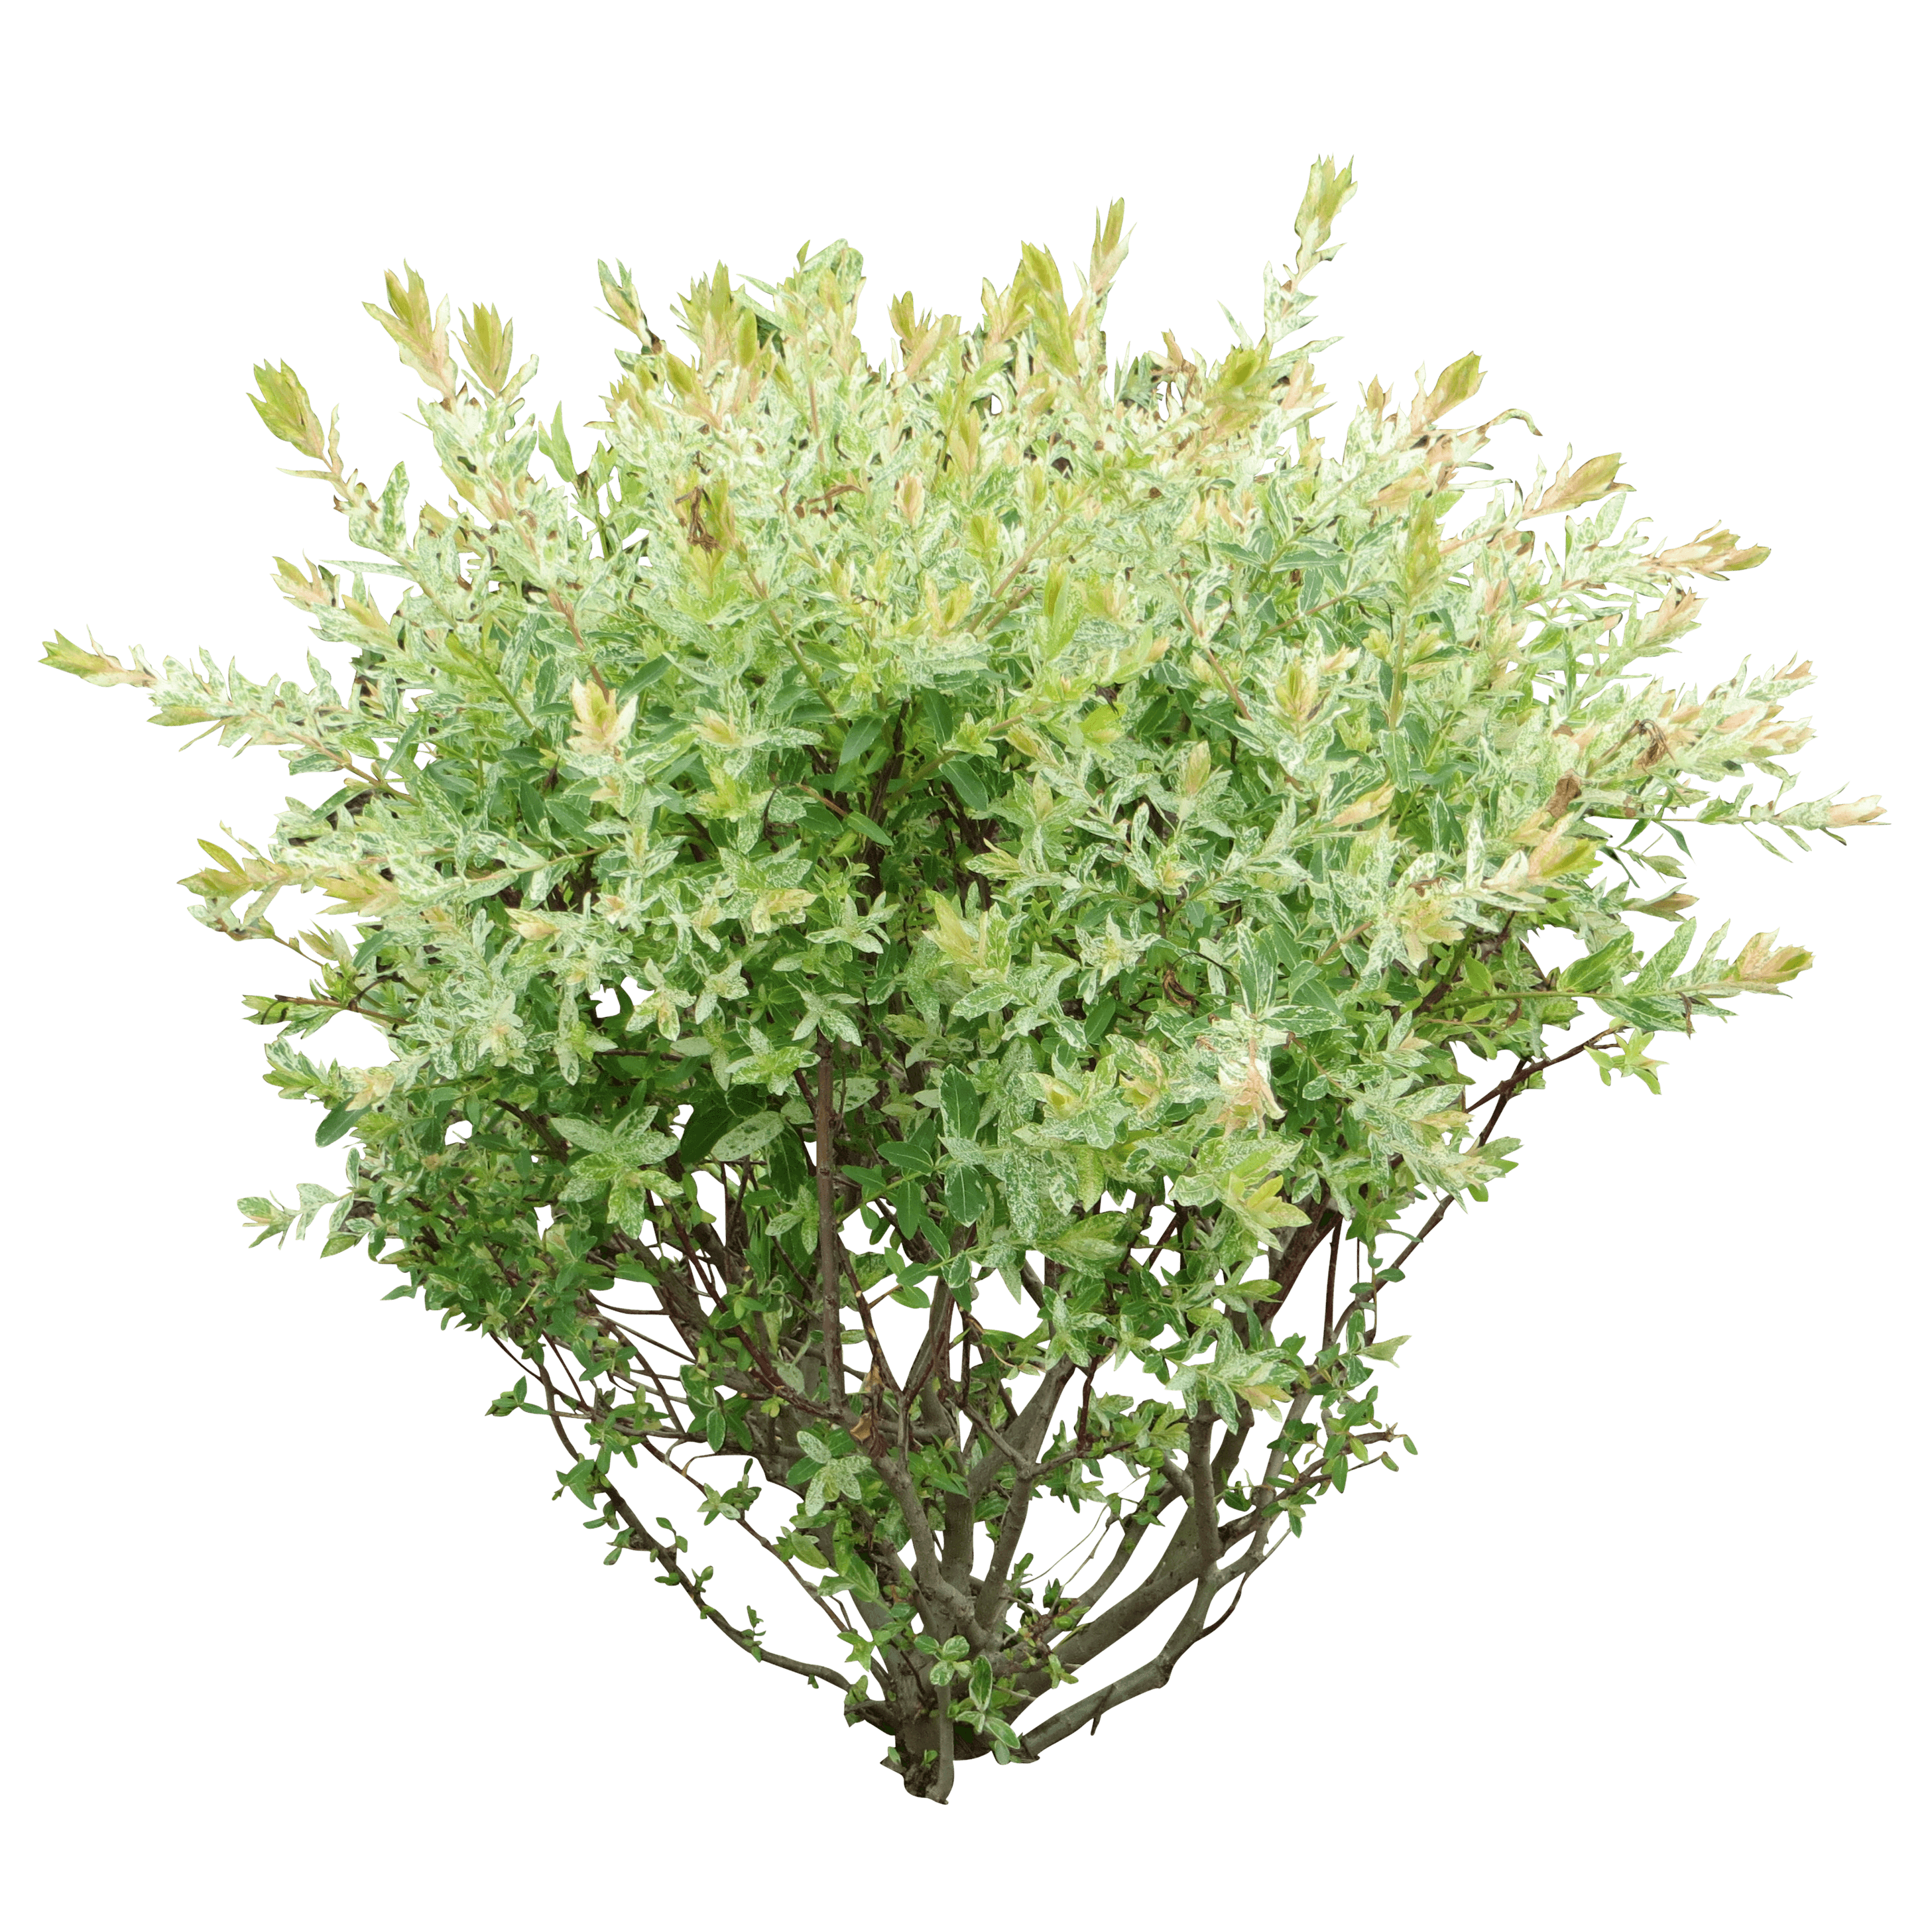 Download Bush Png Image Hq Png Image Freepngimg All bushes png images are displayed below available in 100% png transparent white background for free download. download bush png image hq png image